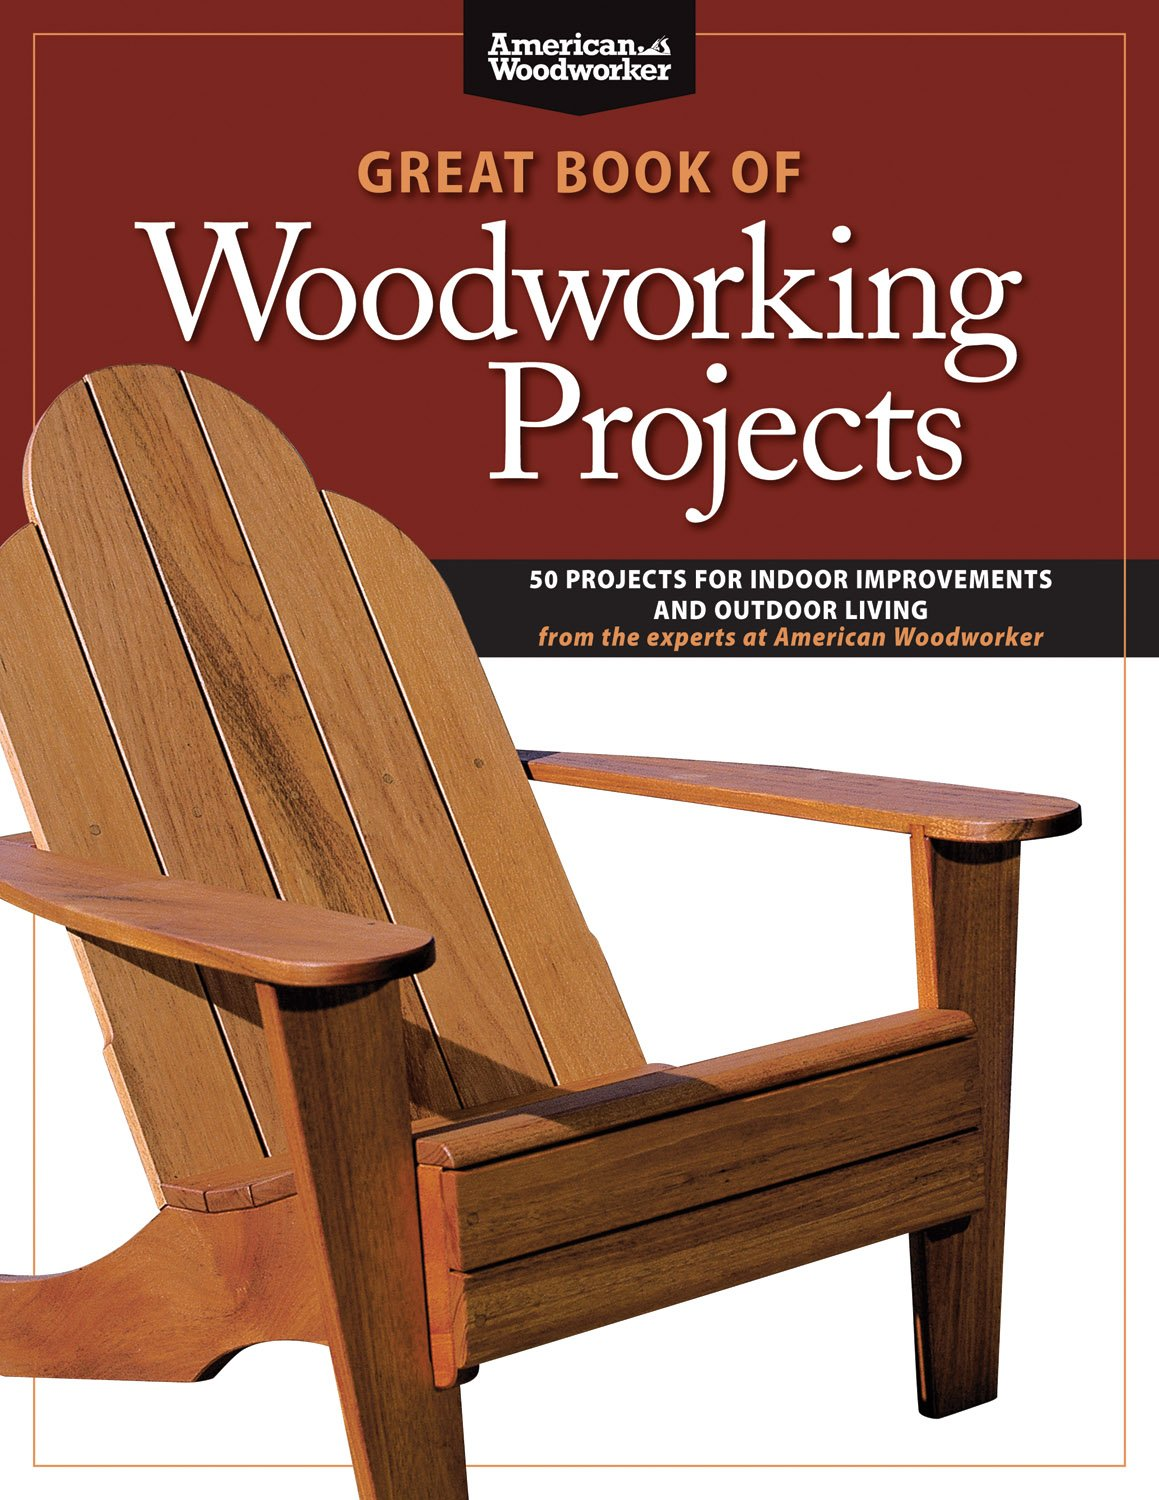 Great Book of Woodworking Projects: 50 Projects for Indoor Improvements And Outdoor Living from the Experts at American Woodworker (American Woodworker ...